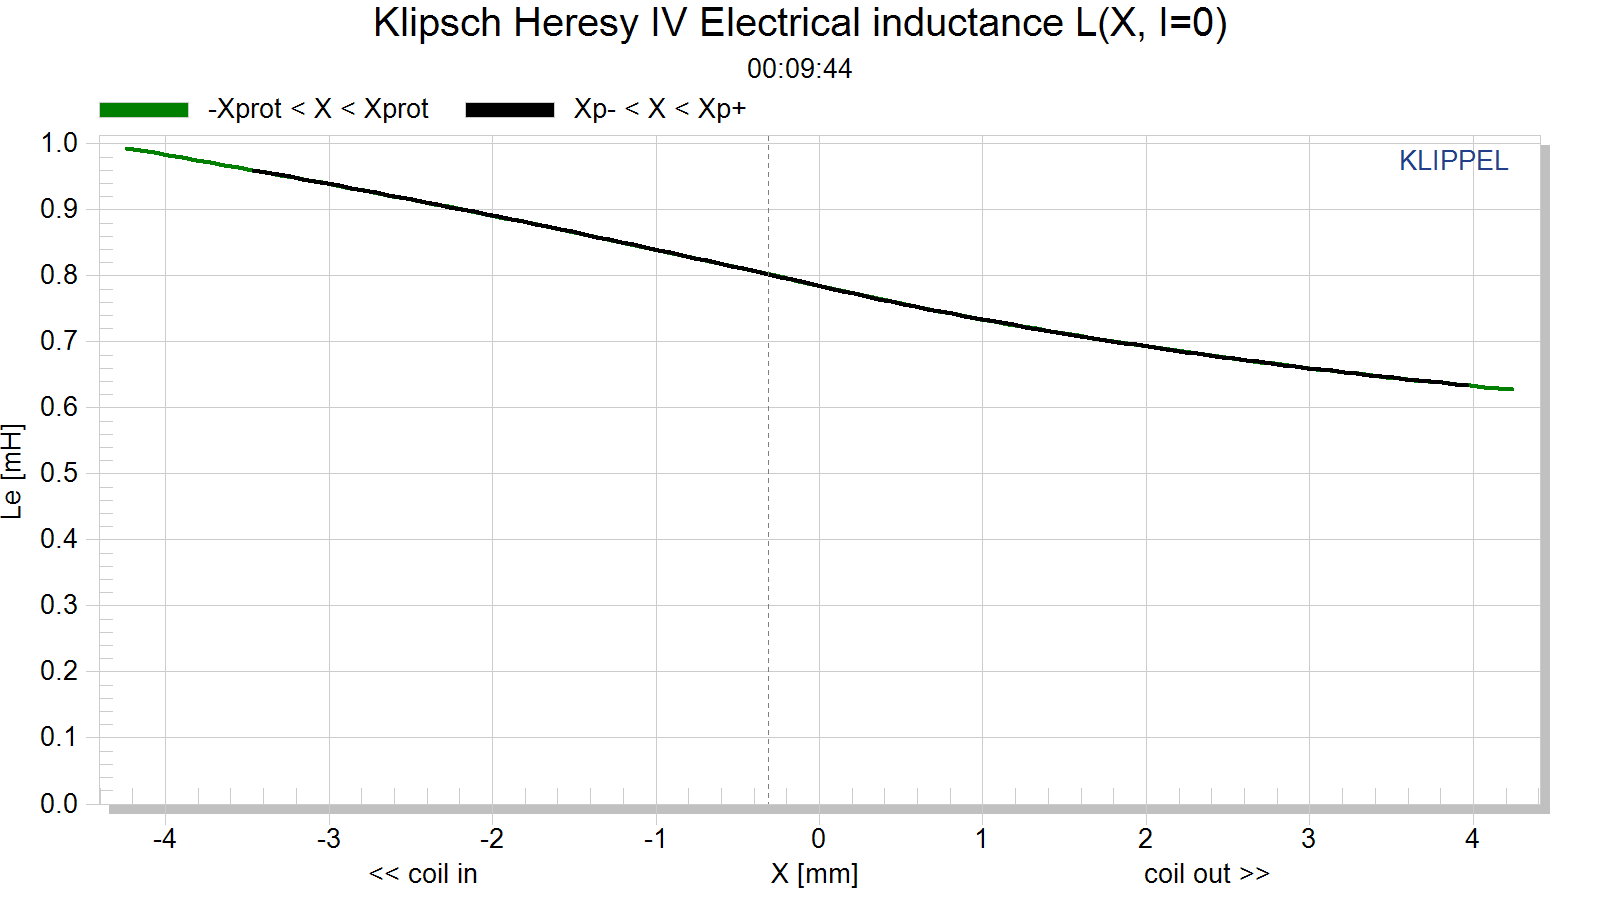 Klipsch Heresy IV Electrical inductance L(X, I=0).png